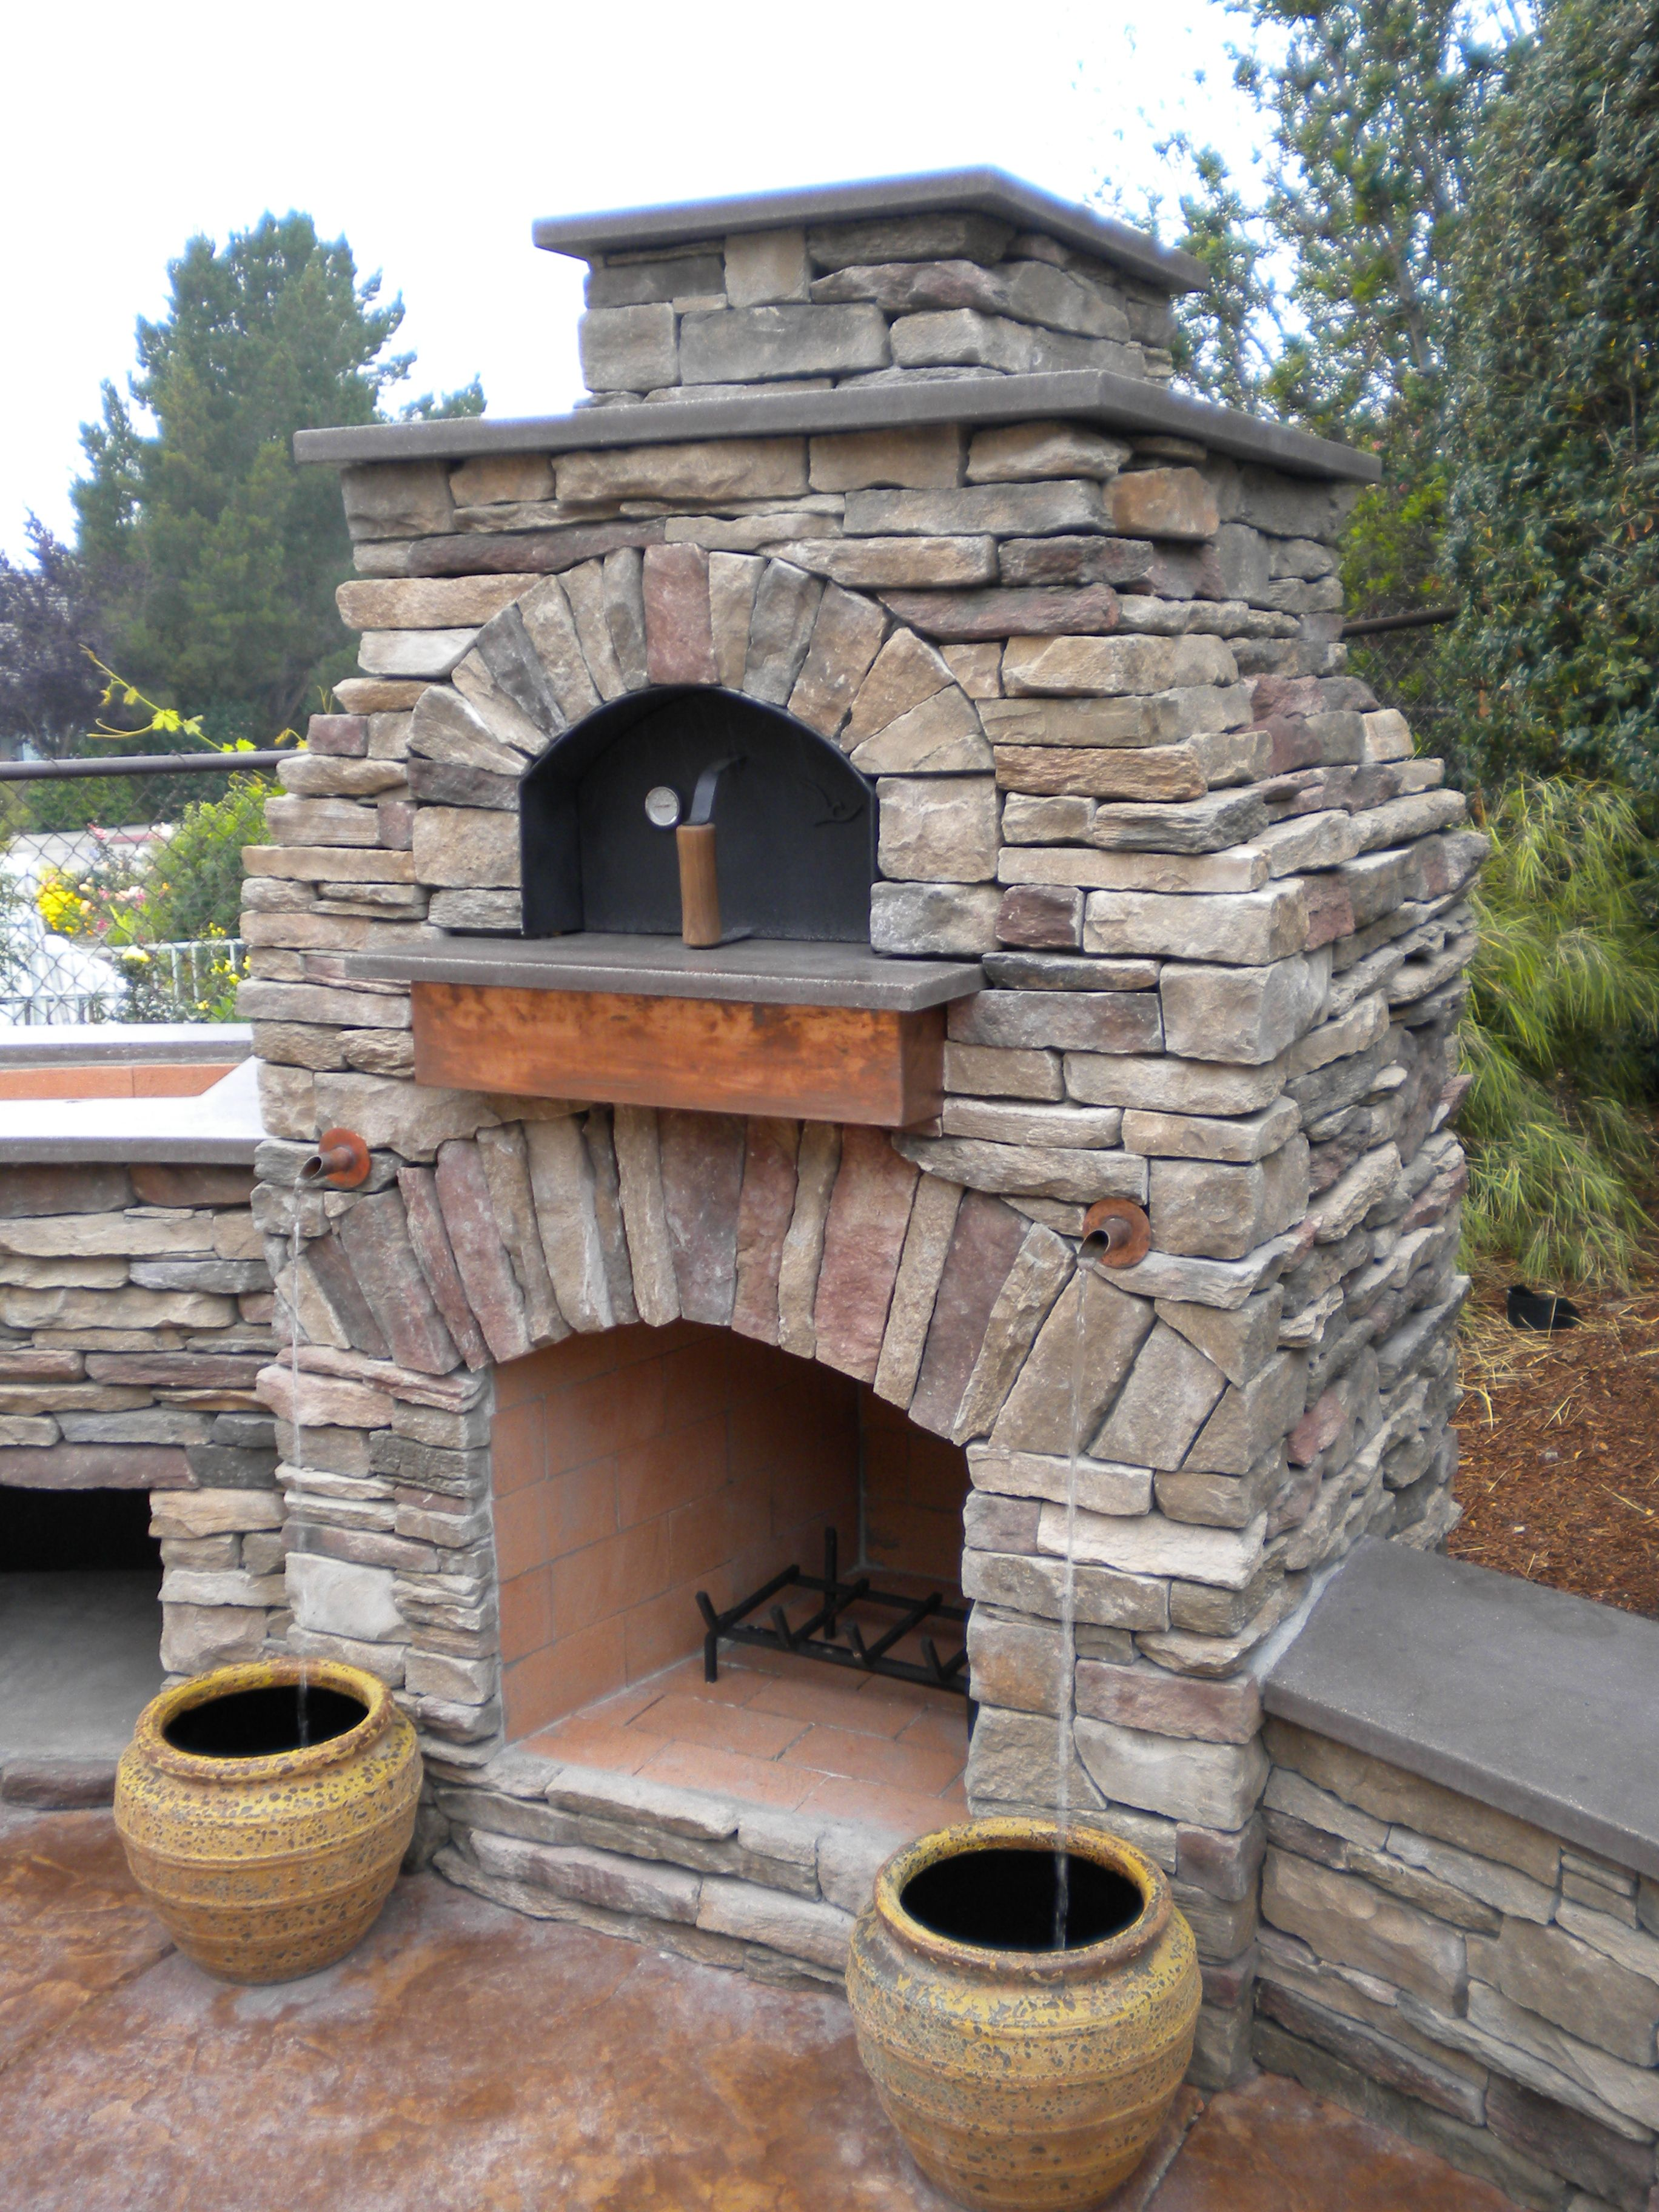 Related image ovens and stoves pinterest stove